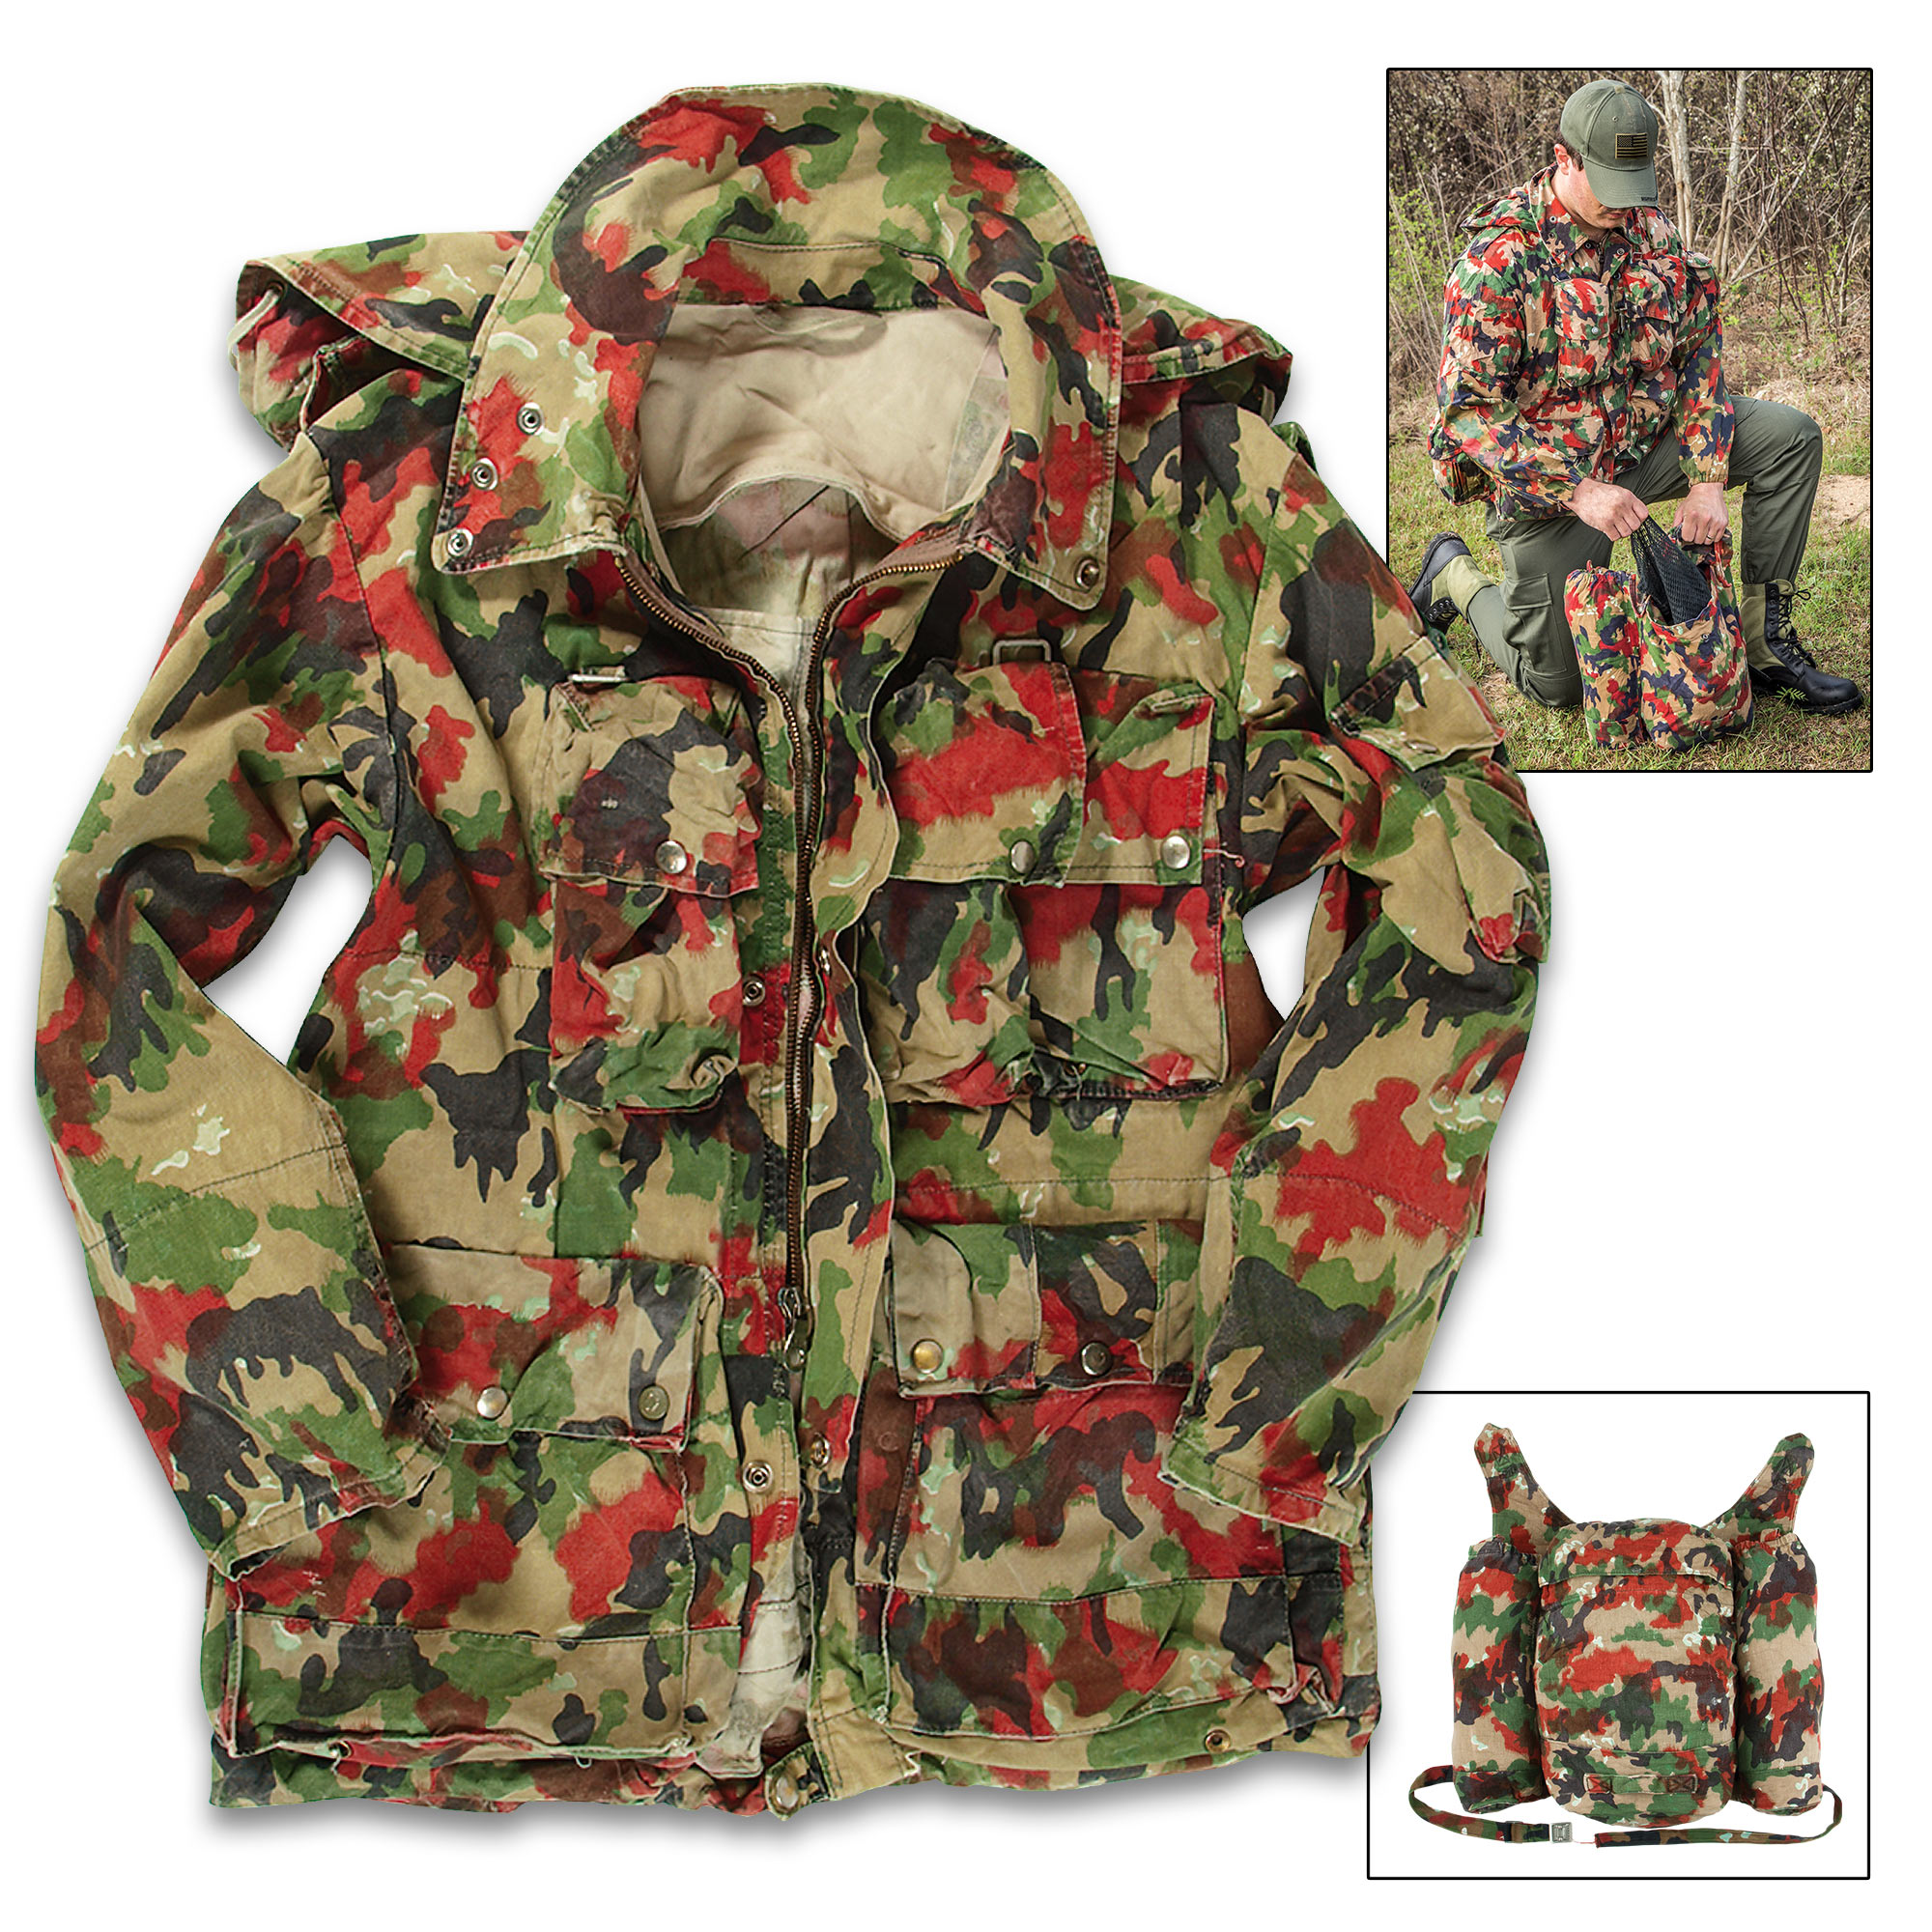 744f6ad06 Swiss Army M70 Field Jacket / Coat with Rucksack / Backpack ...